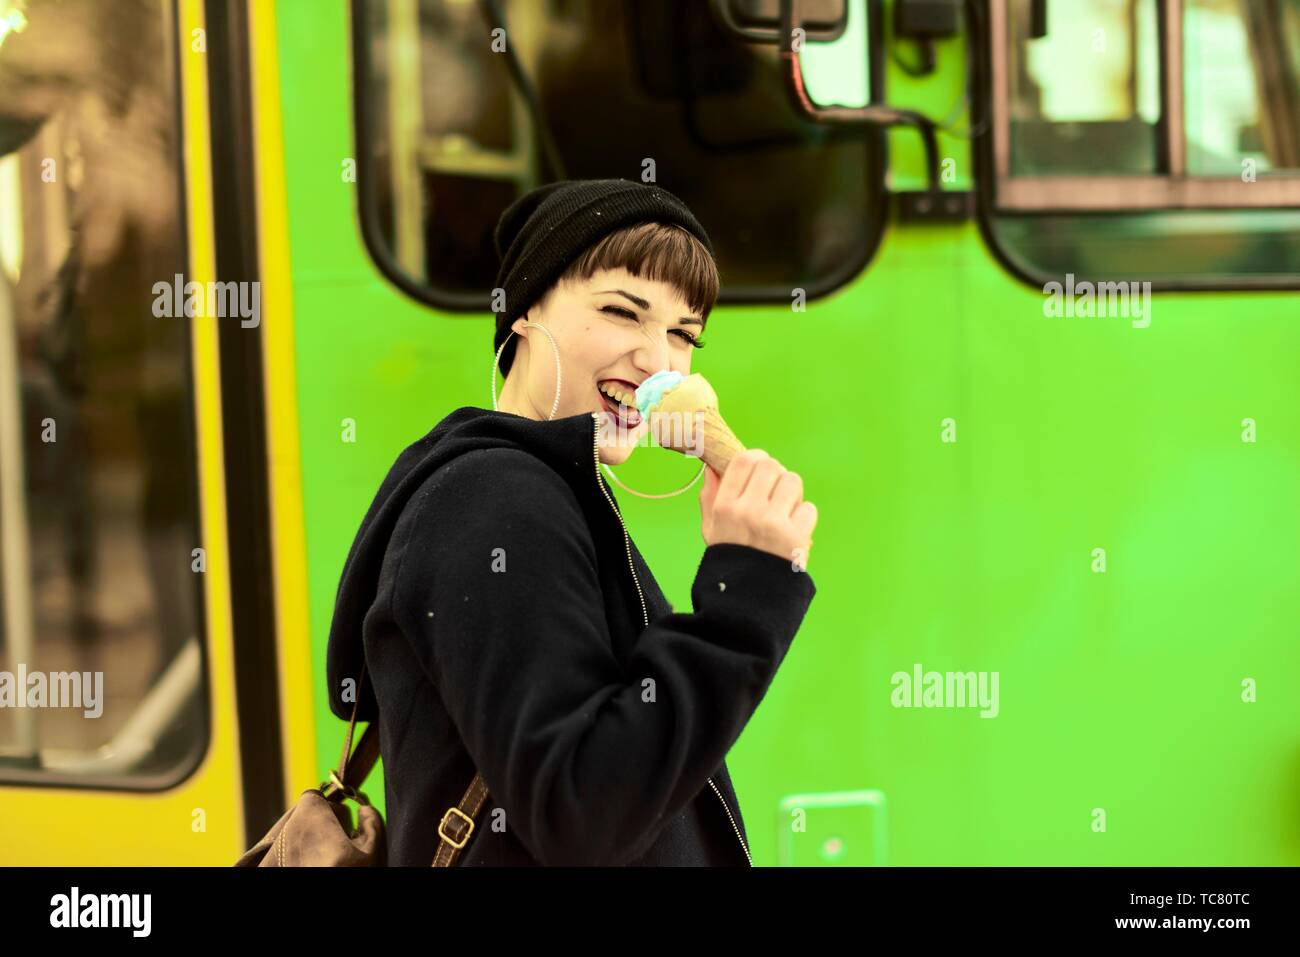 vibrant woman using ice cream cone as microphone, screaming loud her opinion, during warm winter day, in city Cottbus, Brandenburg, Germany. - Stock Image